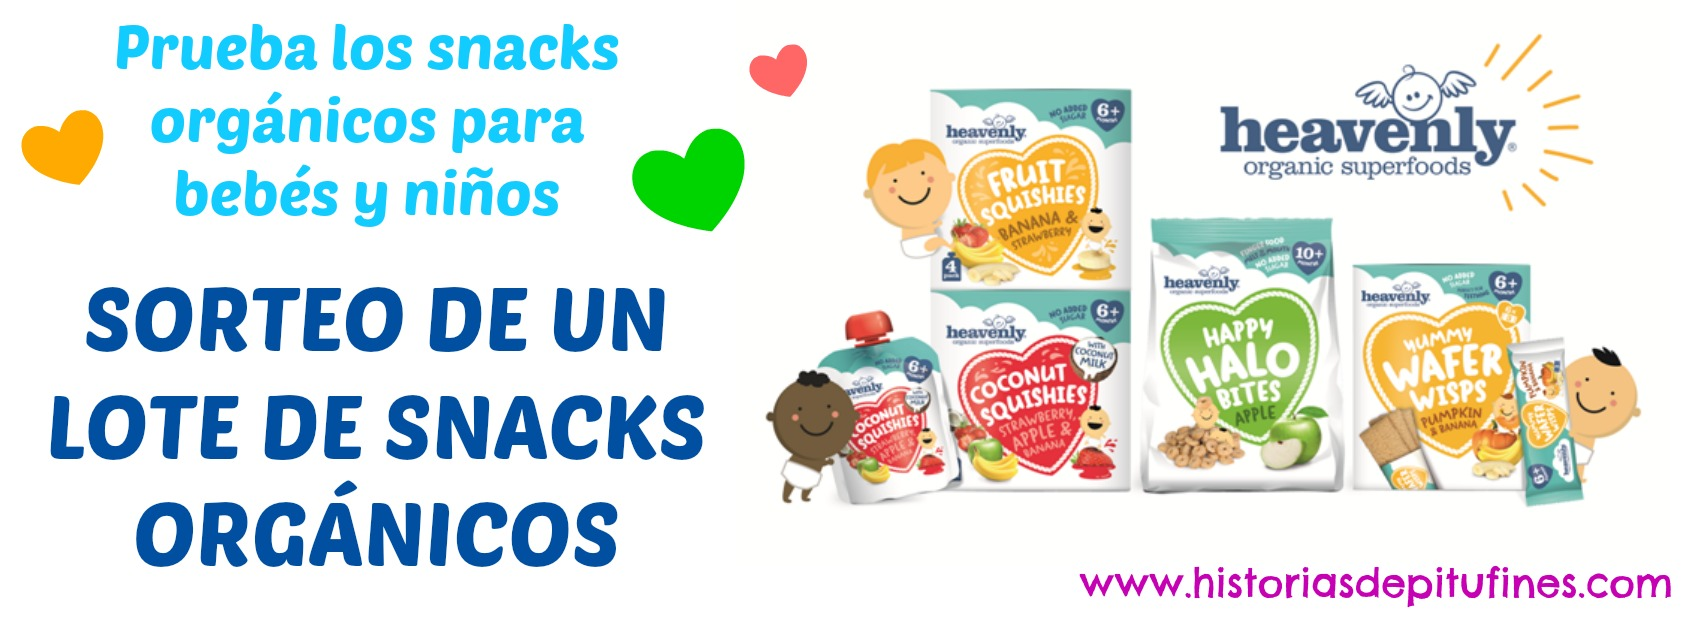 snacks sorteo